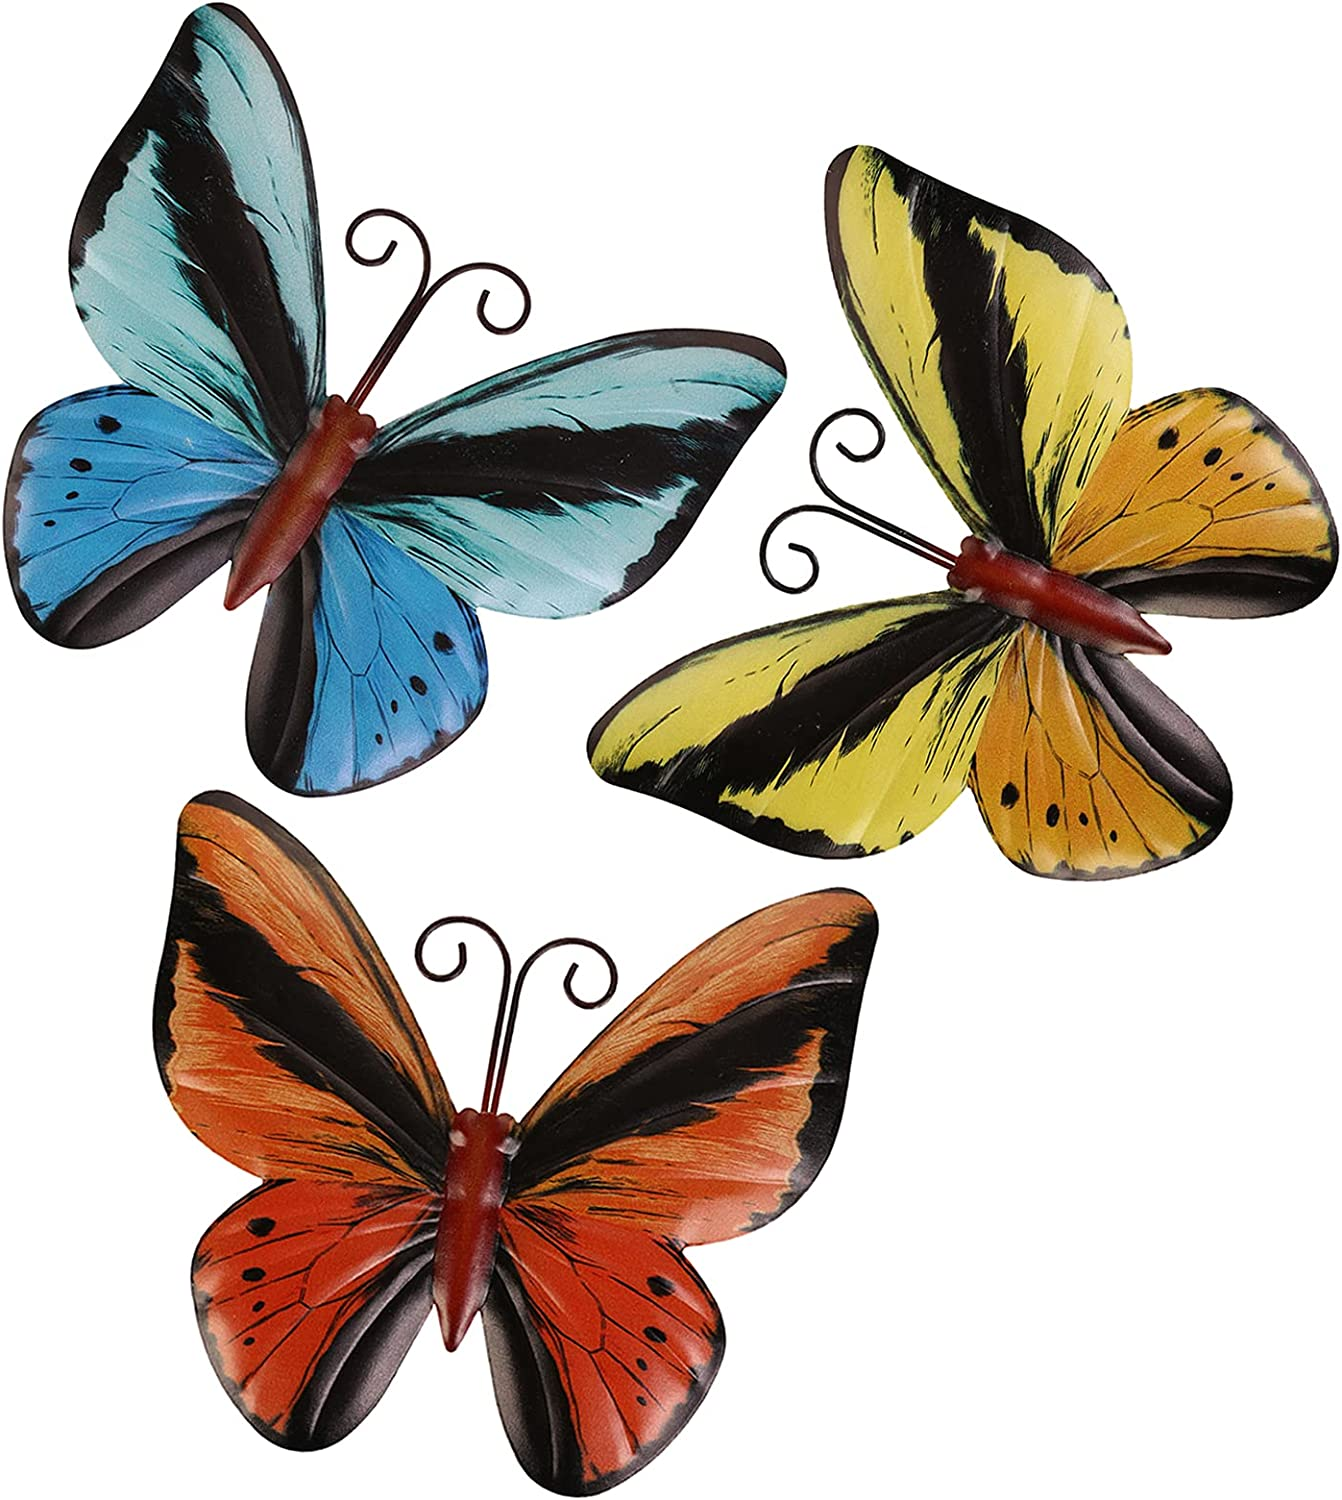 Scwhousi Metal Butterfly Wall Decor Outdoor Garden Fence Art,Hanging Decorations for Living Room, Bedroom, 3 Pack